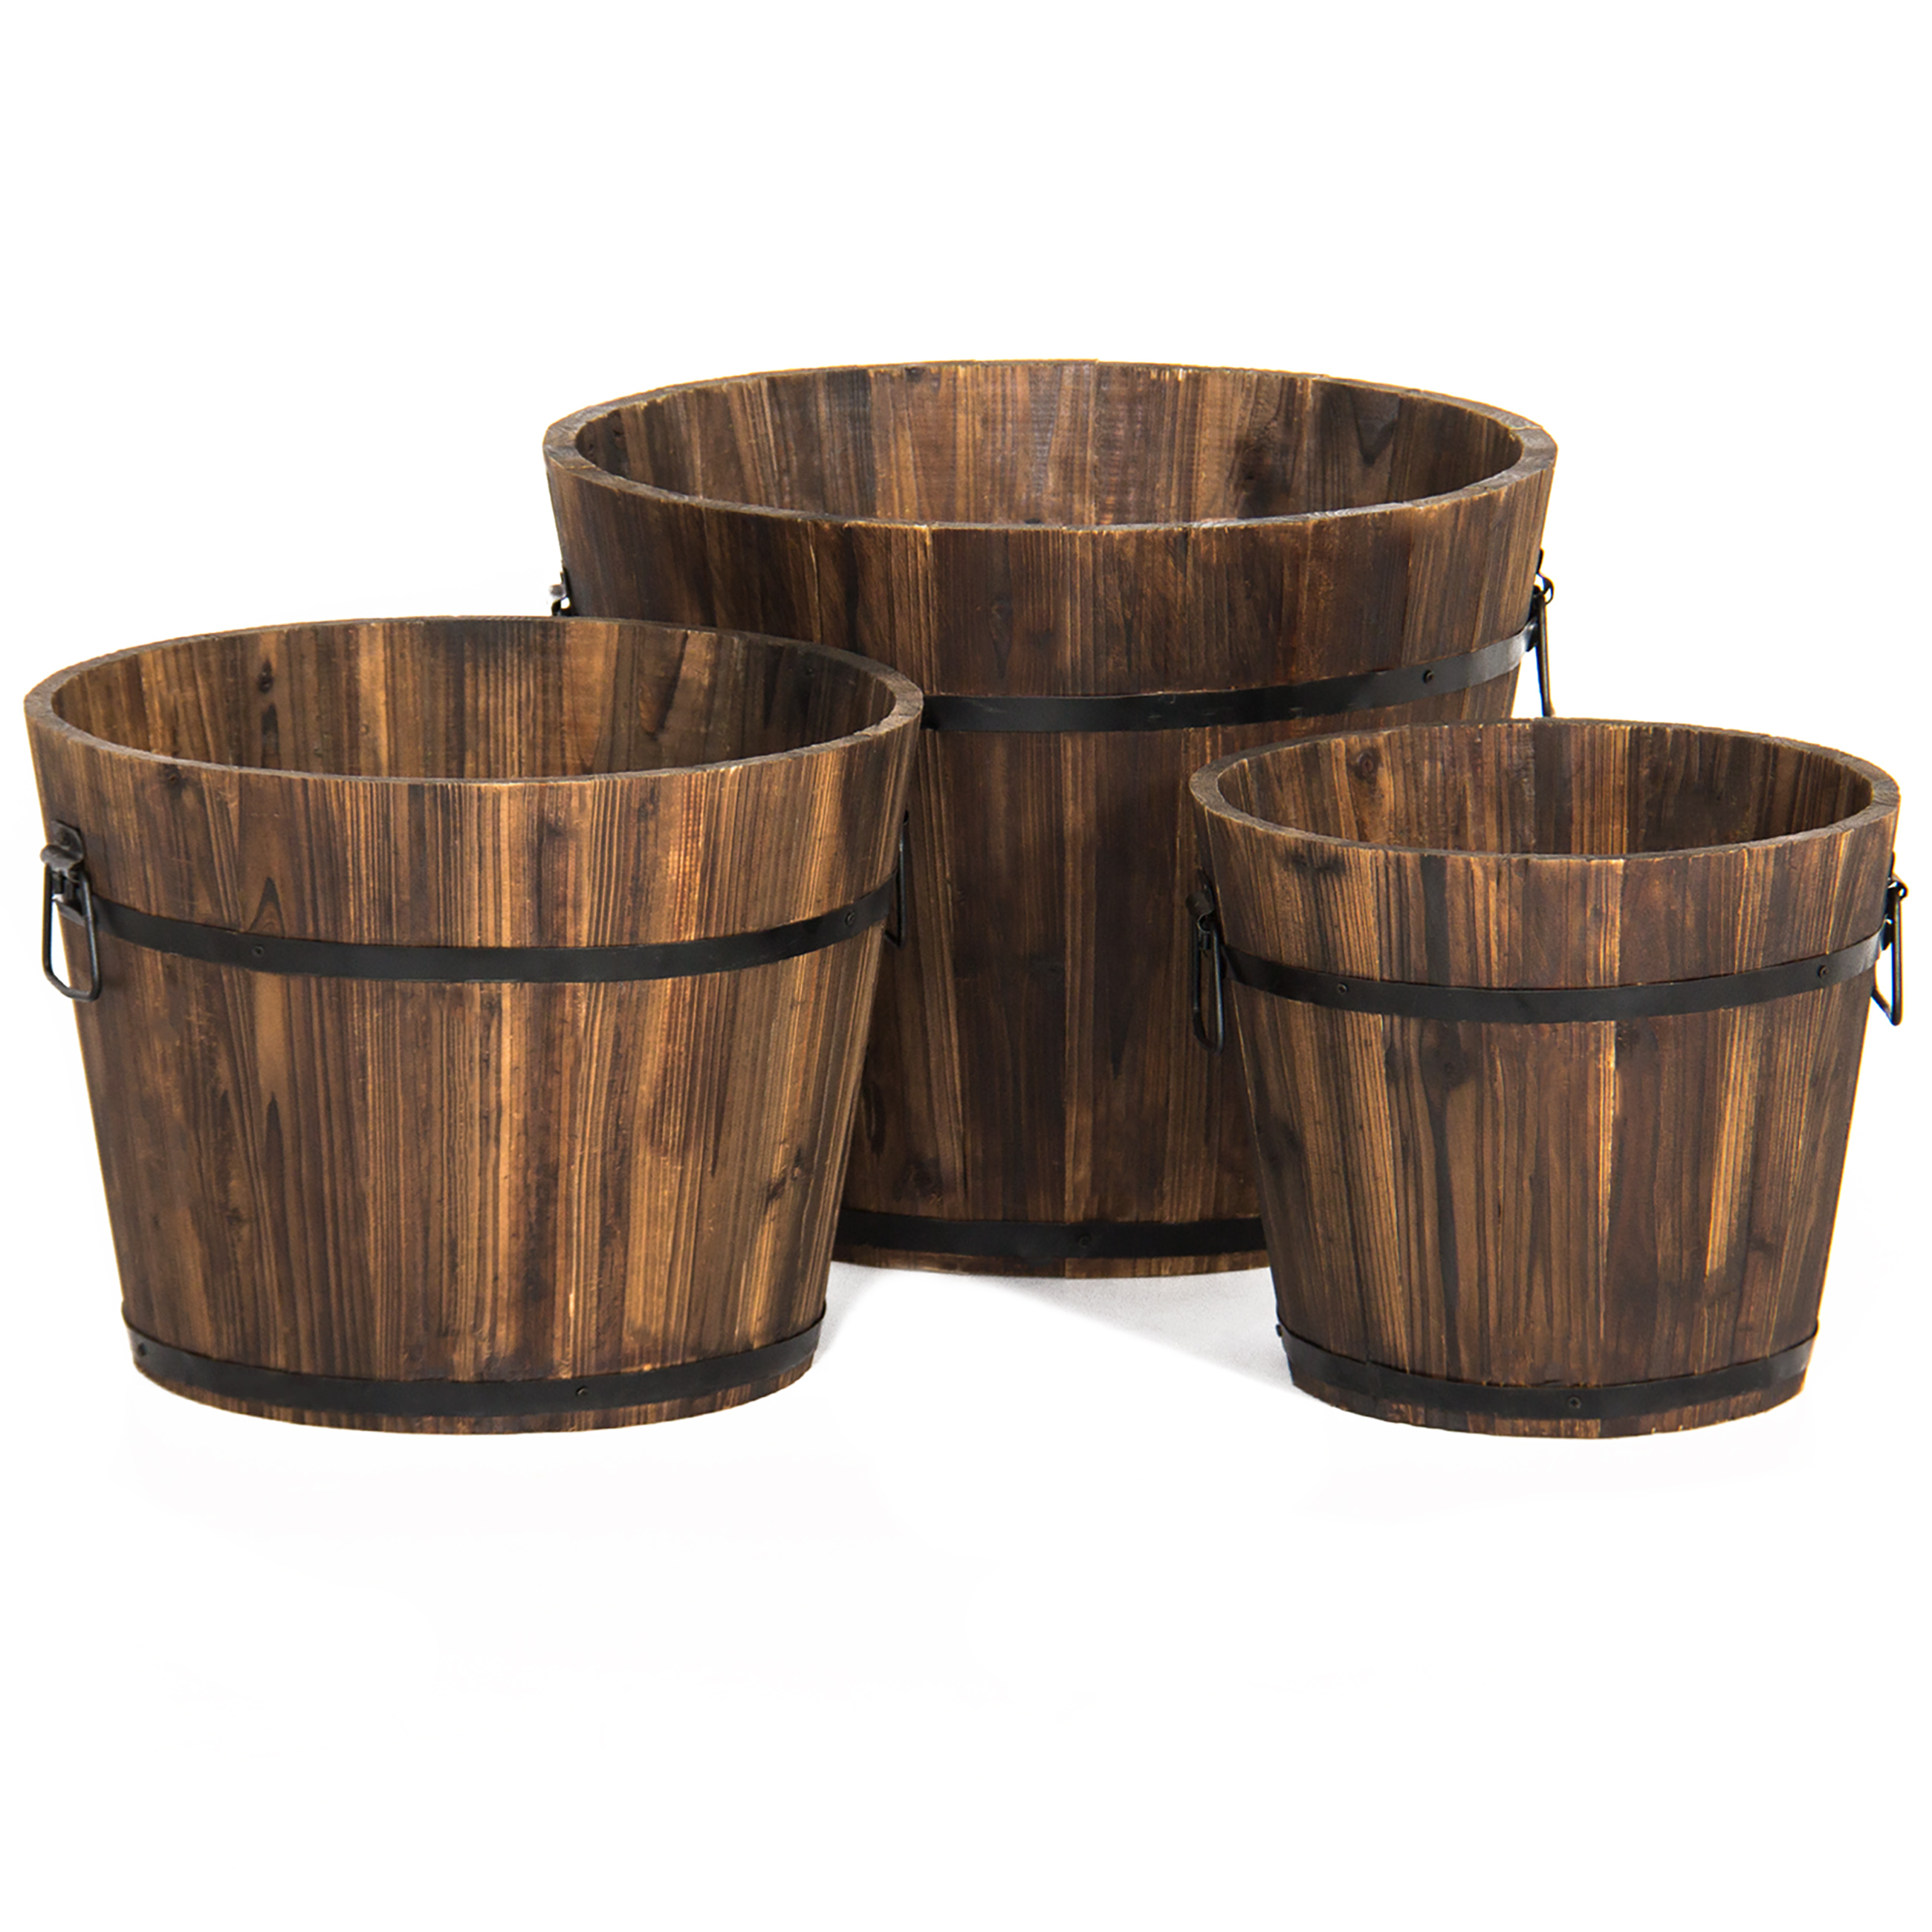 Best Choice Products Set of 3 Indoor/Outdoor Wood Barrel Planter w/ Drainage Holes - Brown